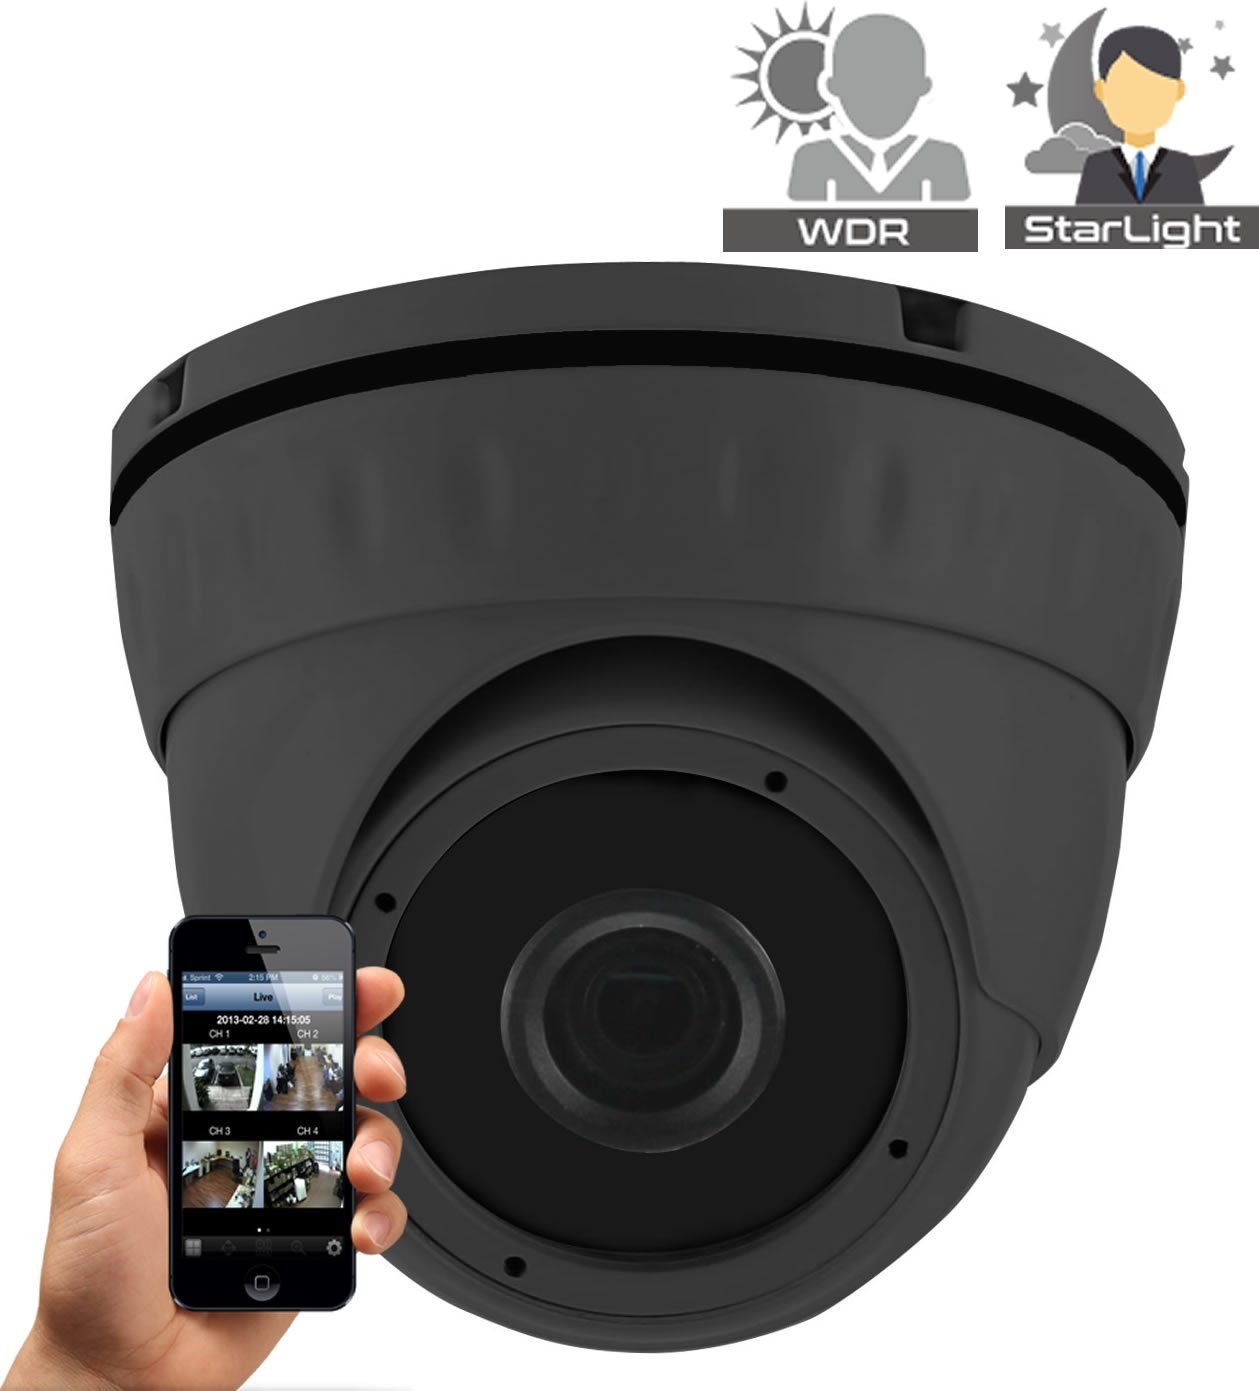 HDView (Economic Series) Starlight HDR 3MP IP Network Camera ONVIF PoE, SONY Starvis Back-illuminated Sensor, Infrared Megapixel 2.8mm Wide Angle Lens 3-Axis, P2P Eyeball Dome Grey